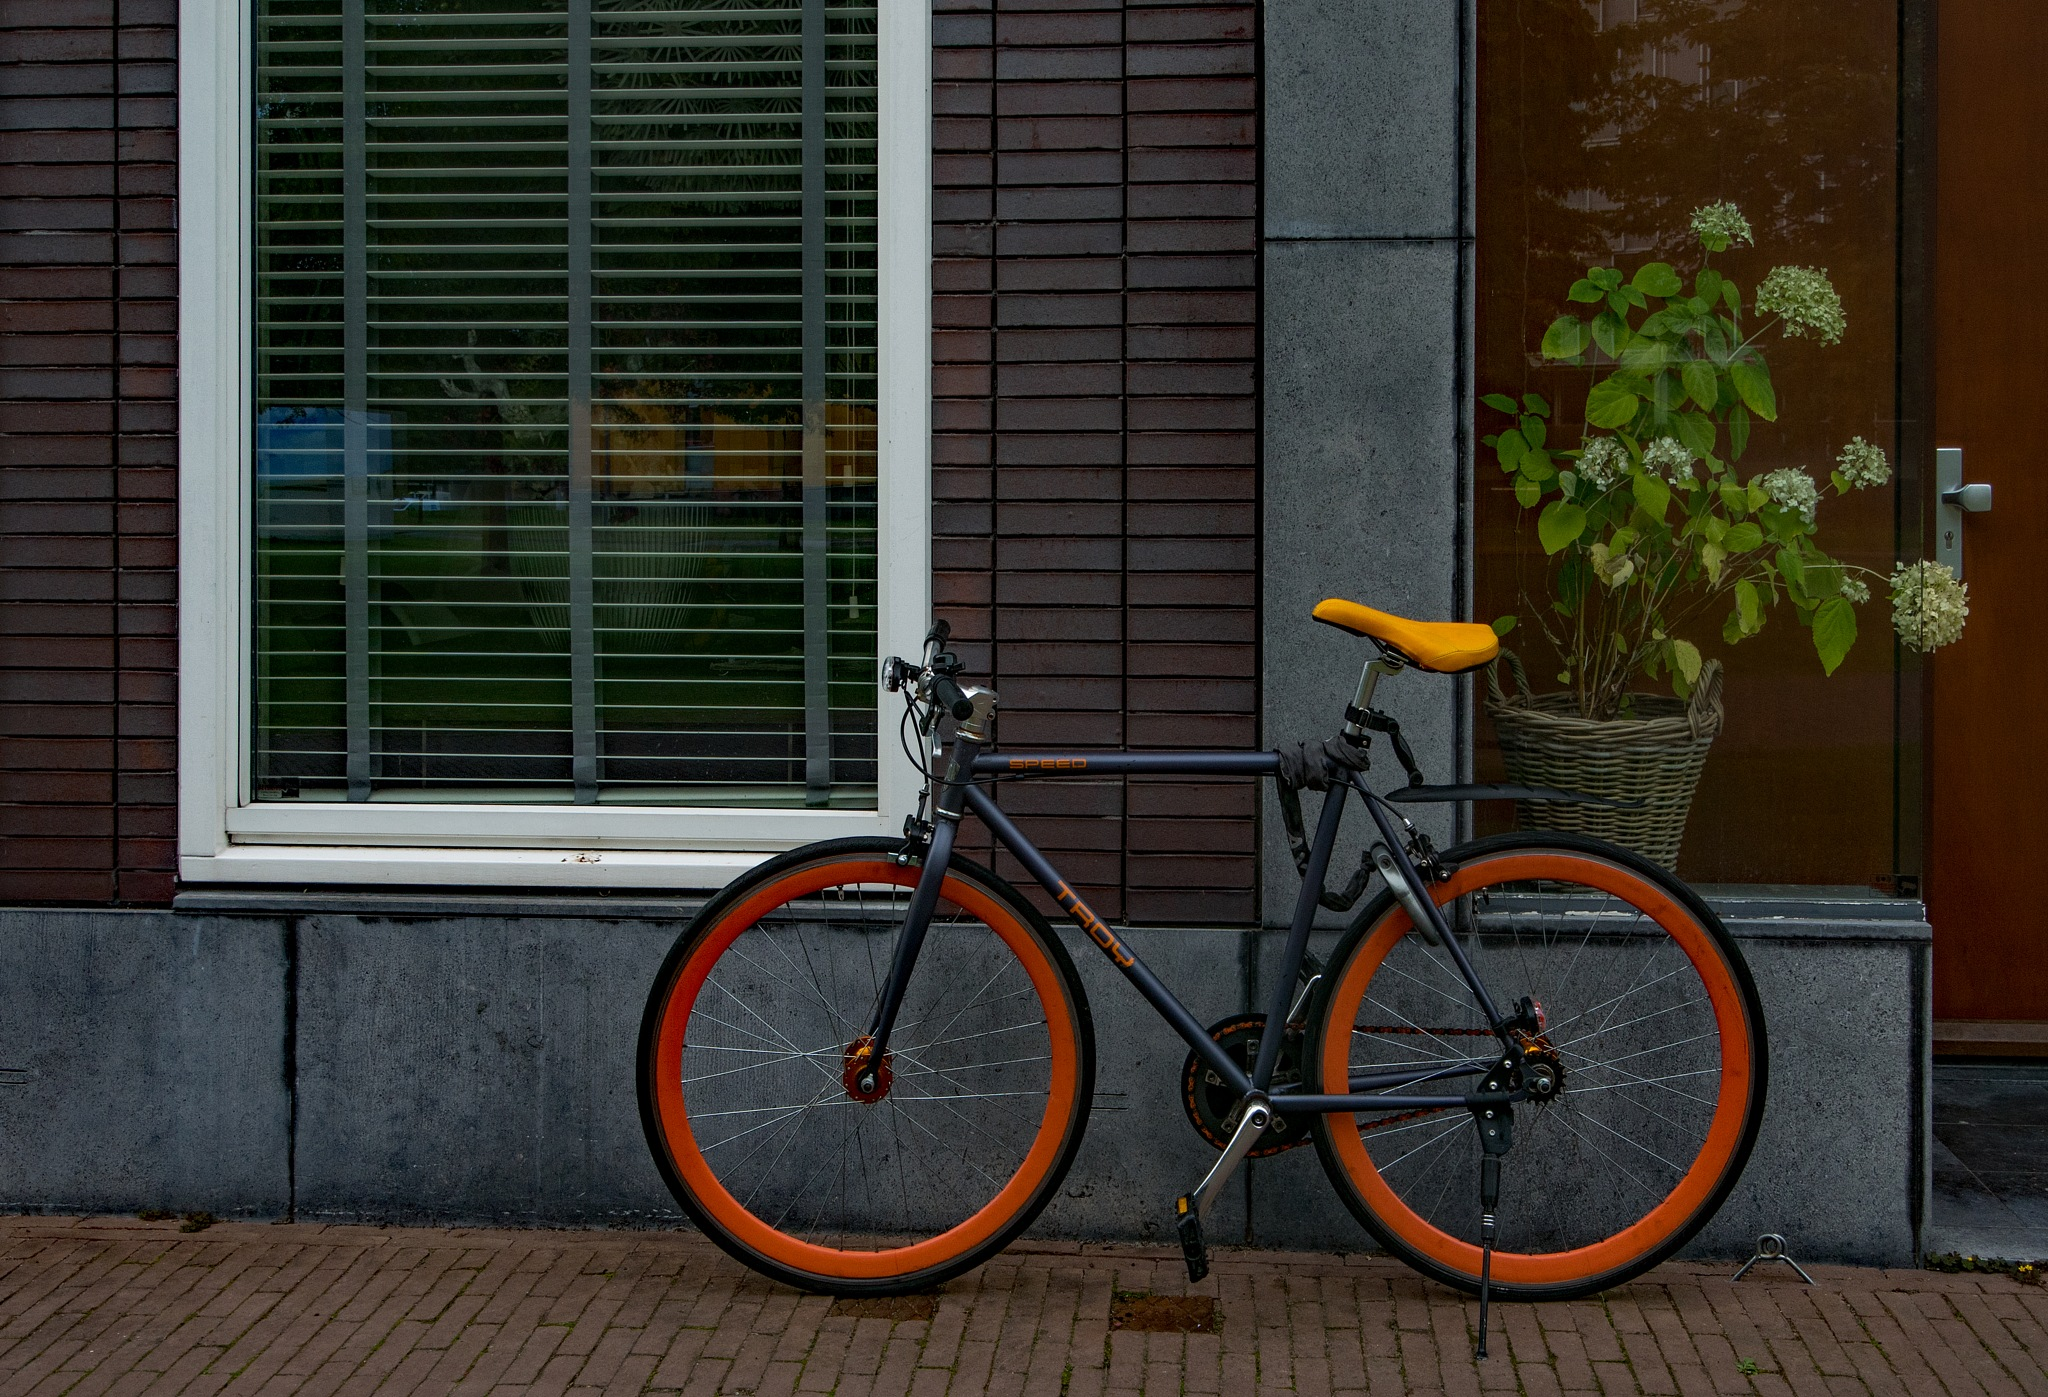 Bike with badly adjusted saddle by HaWaFoTo